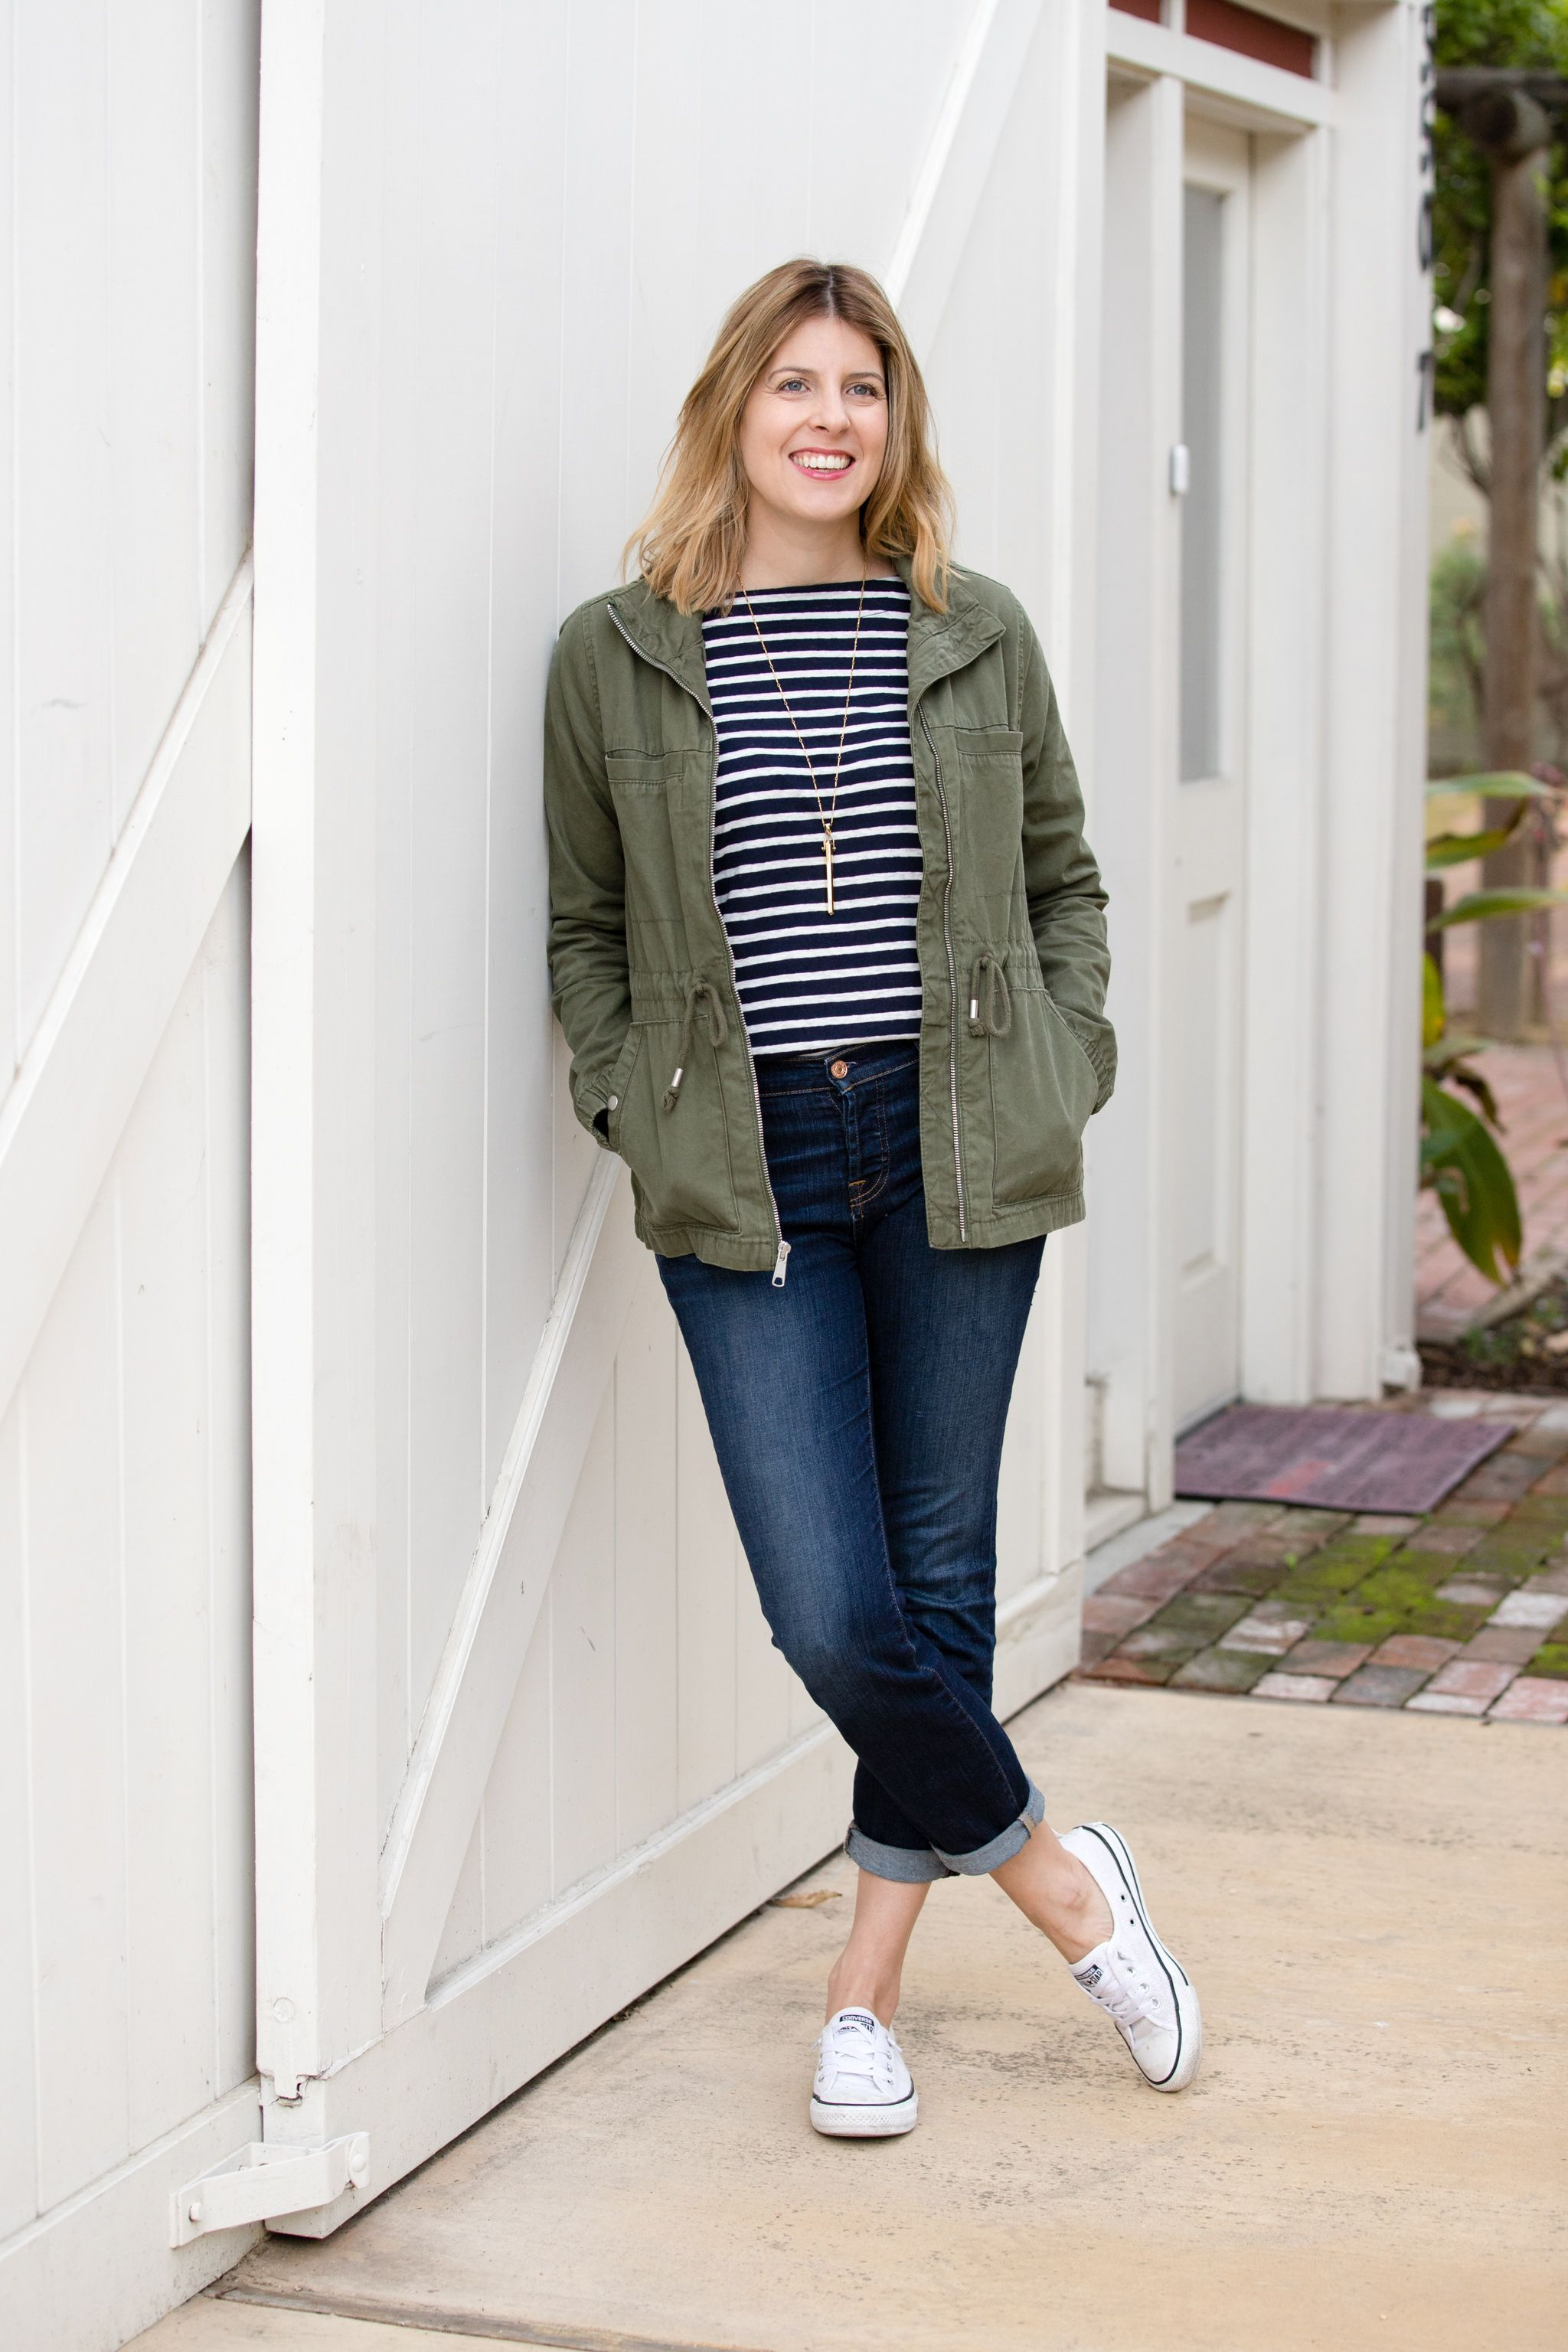 379636e8c697c2 I love how this Old Navy field jacket pairs with boyfriend jeans and a  striped t shirt. - Abby Savvy